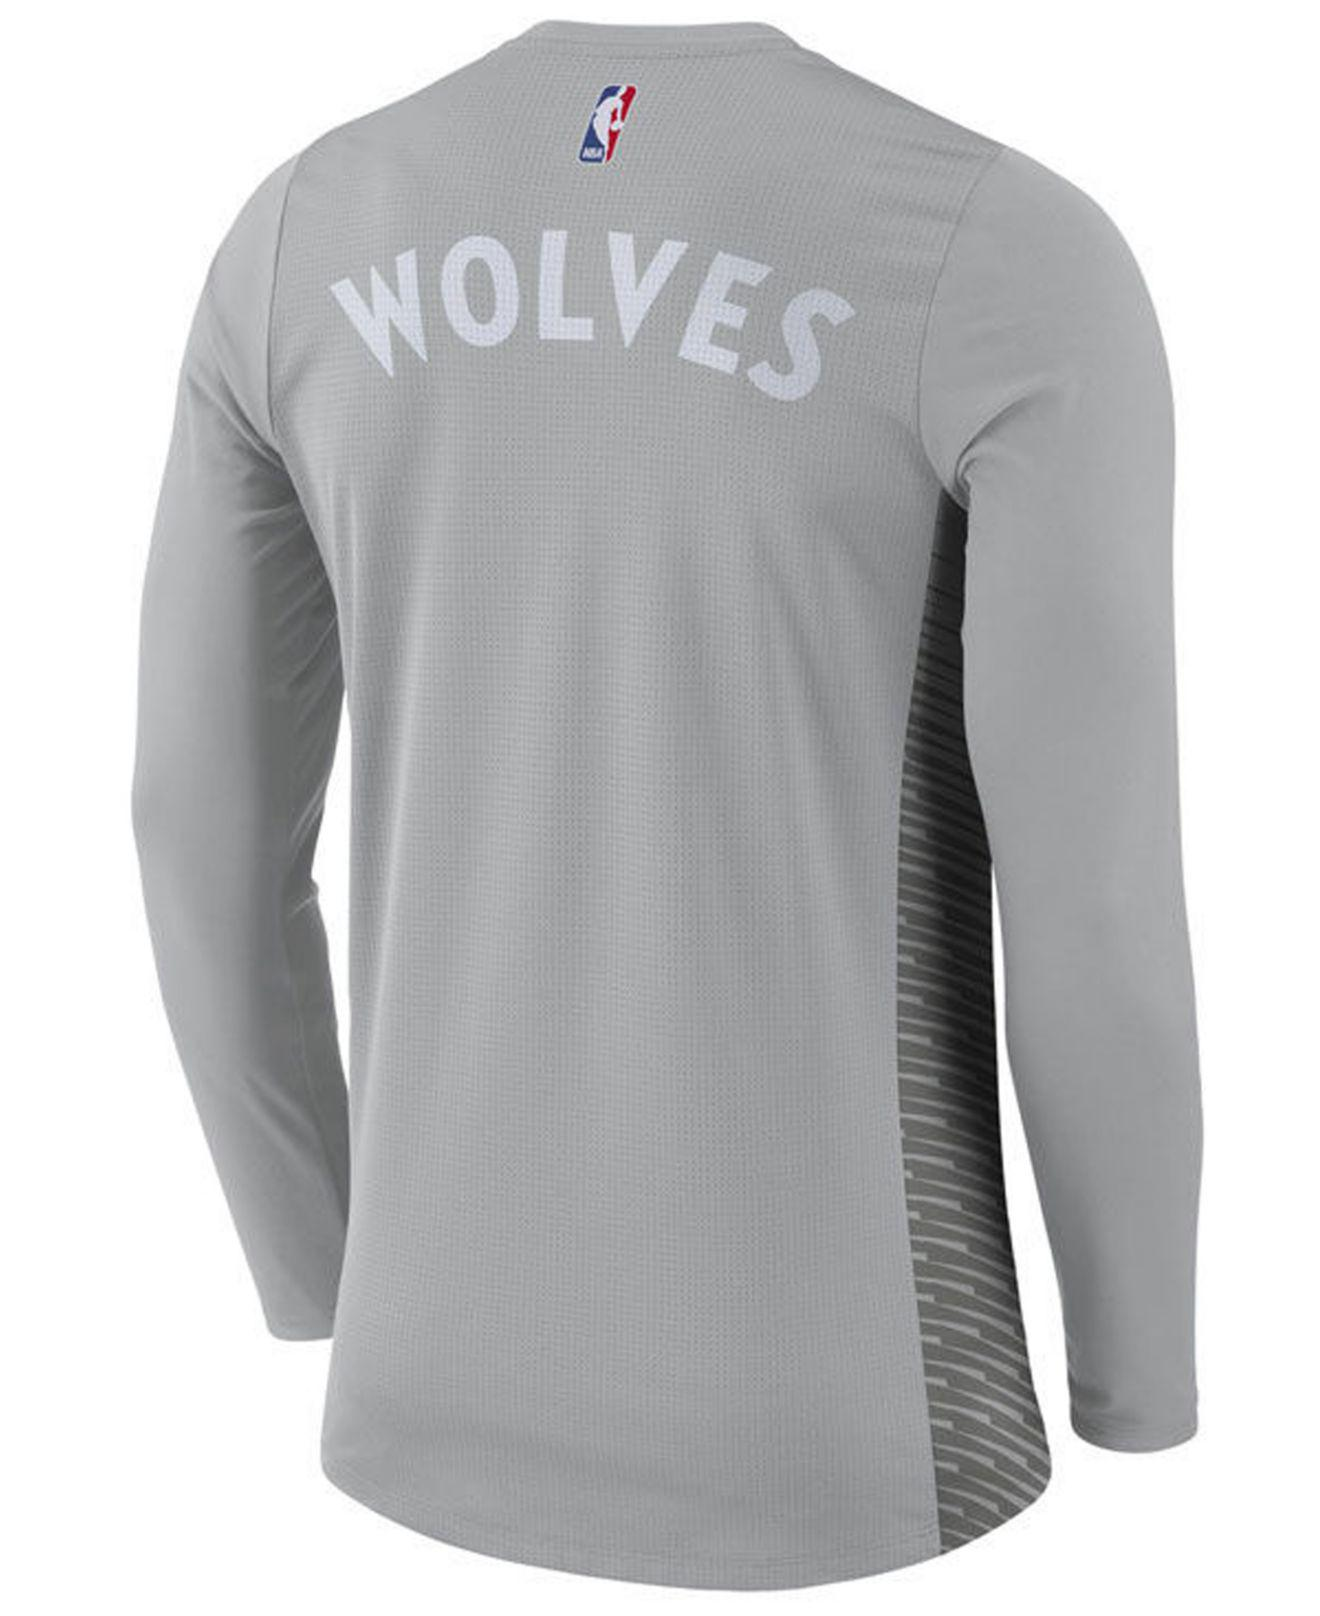 078537d0a568 Lyst - Nike Minnesota Timberwolves City Edition Shooting Shirt in ...